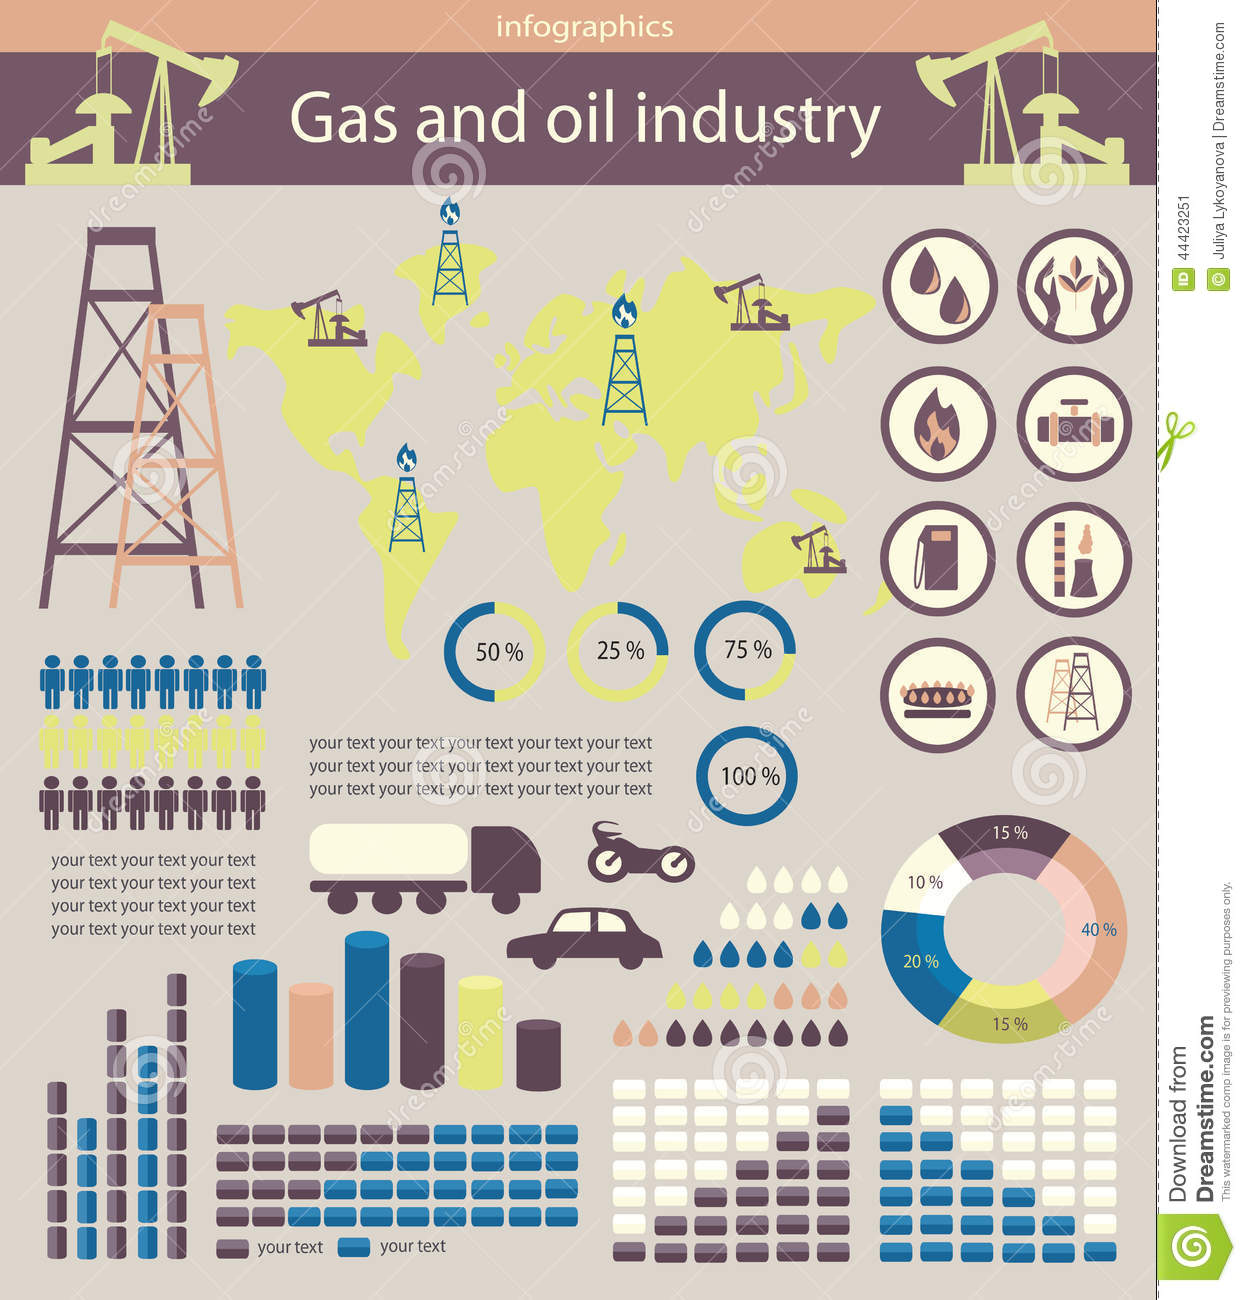 How To Start An Oil And Gas Company In Nigeria: The Complete Guide